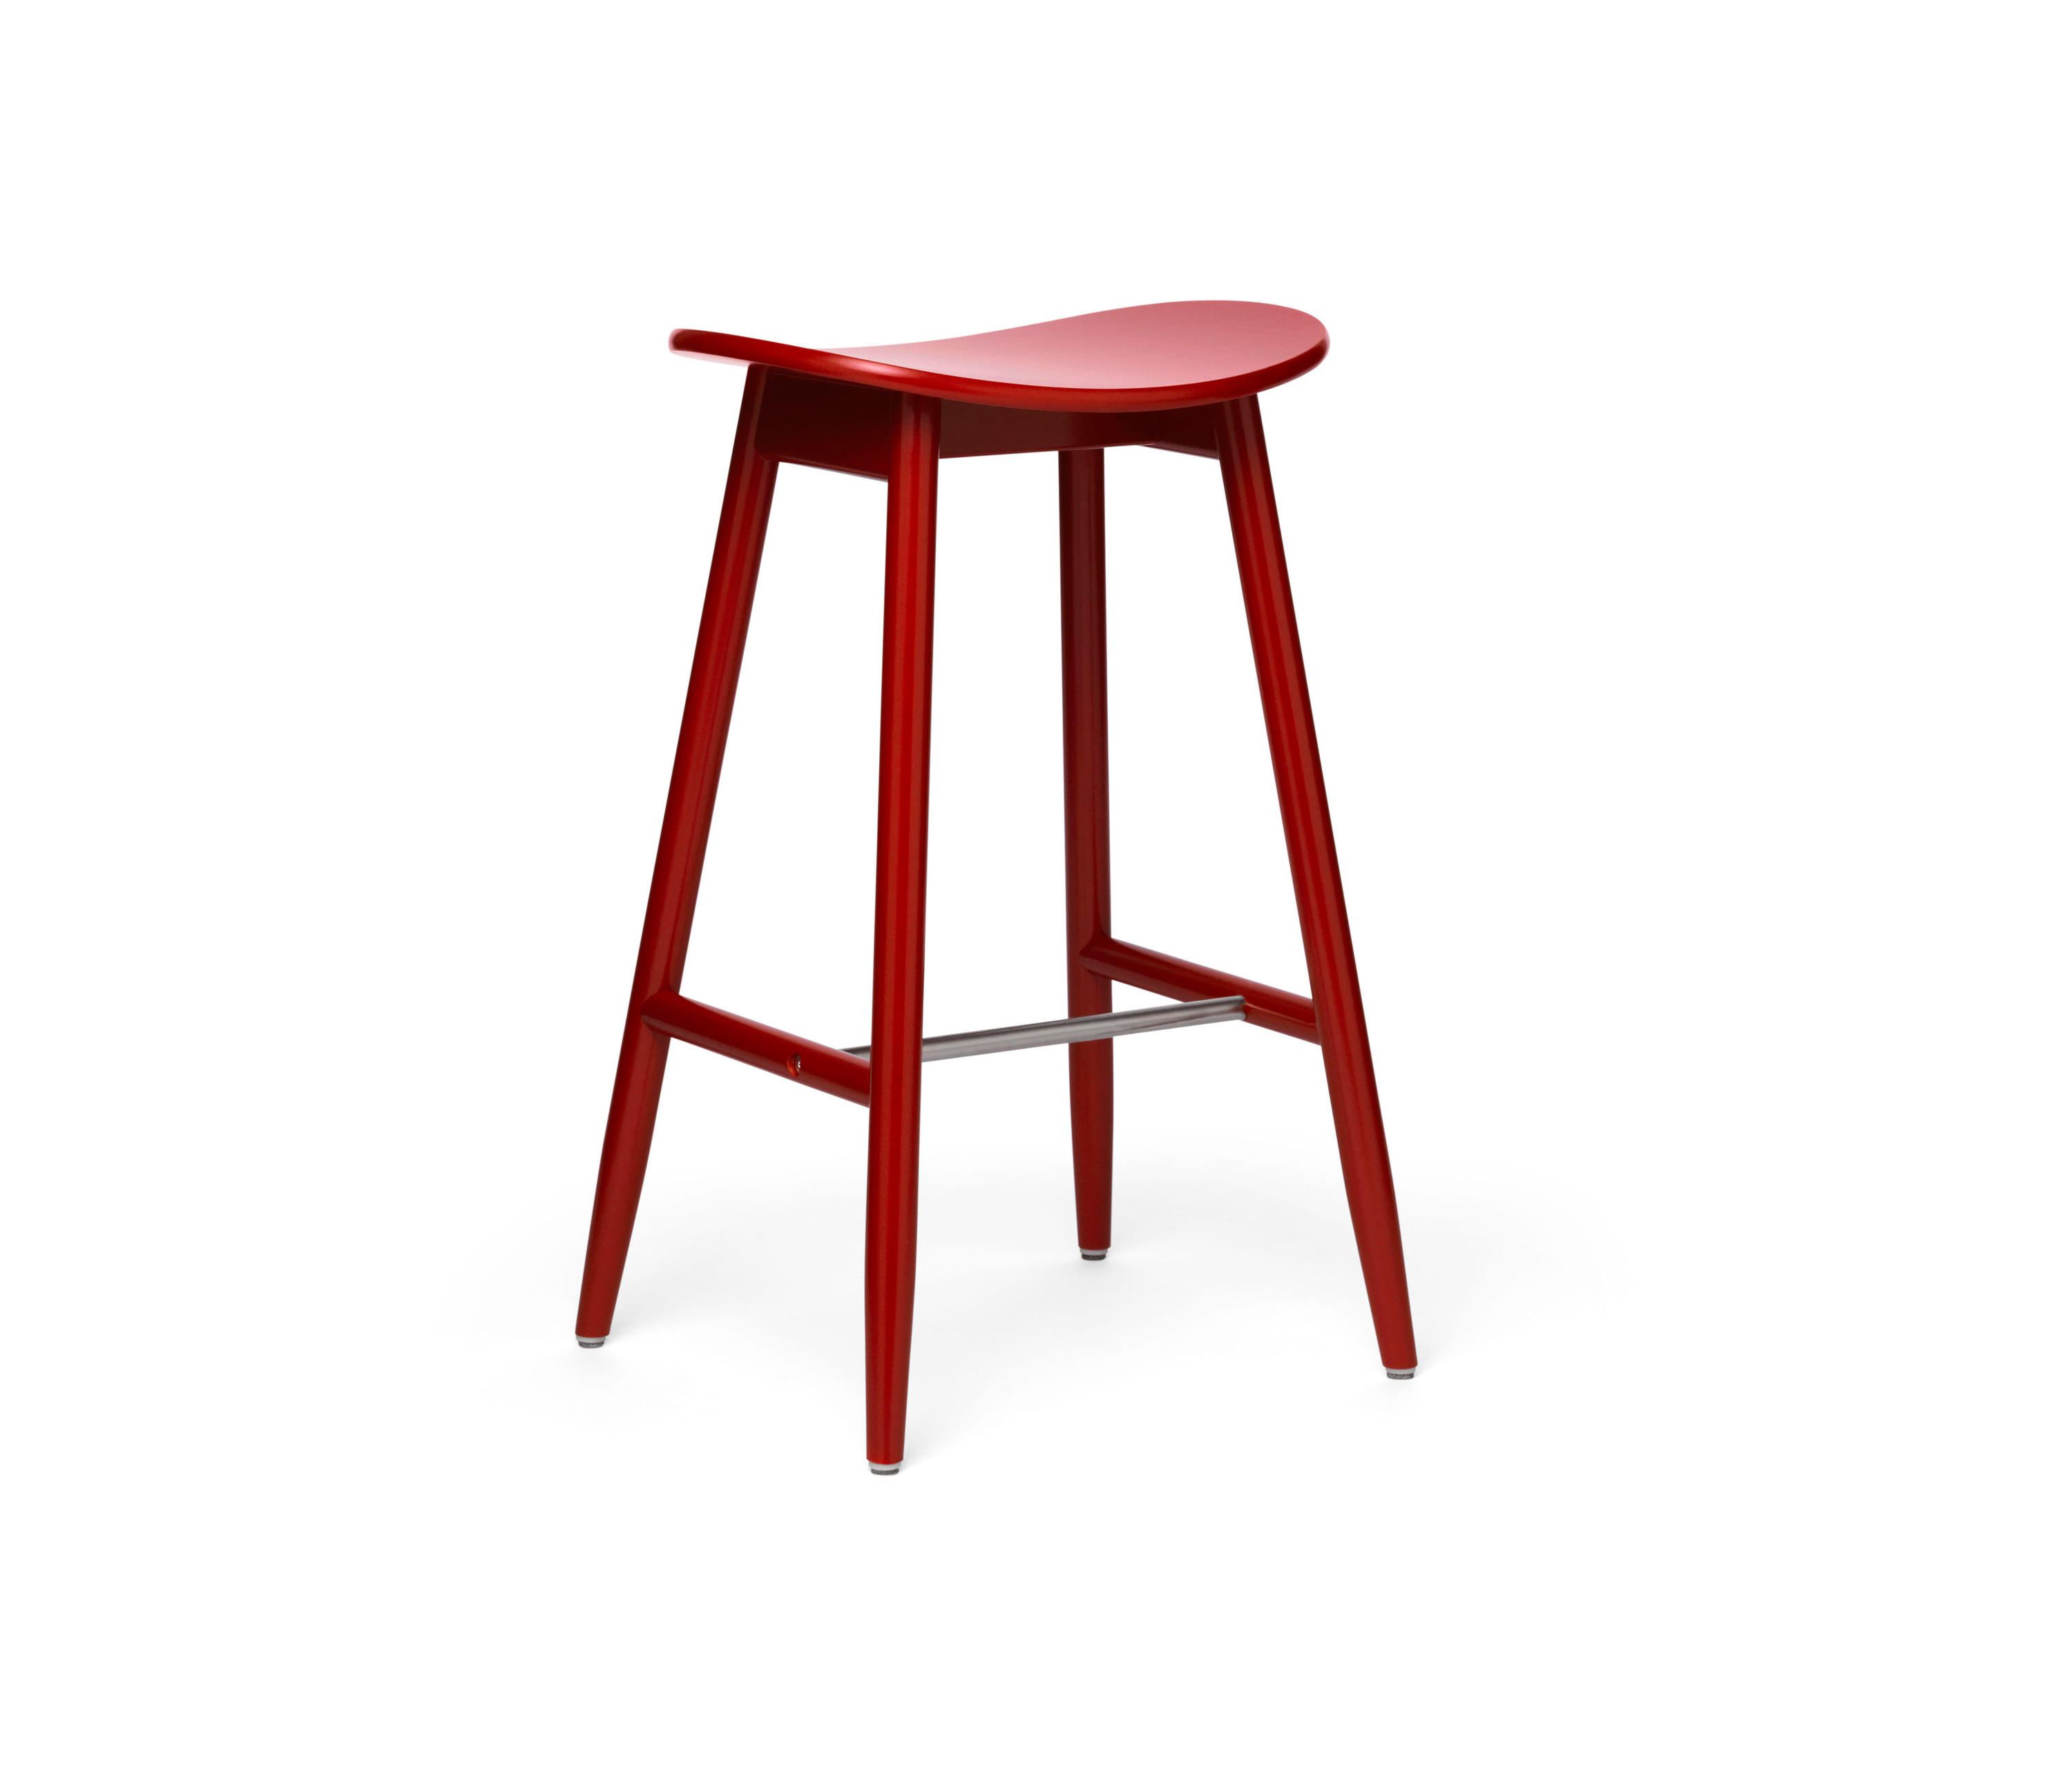 Icha bar stool 65 barhocker von massproductions architonic for Barhocker 65